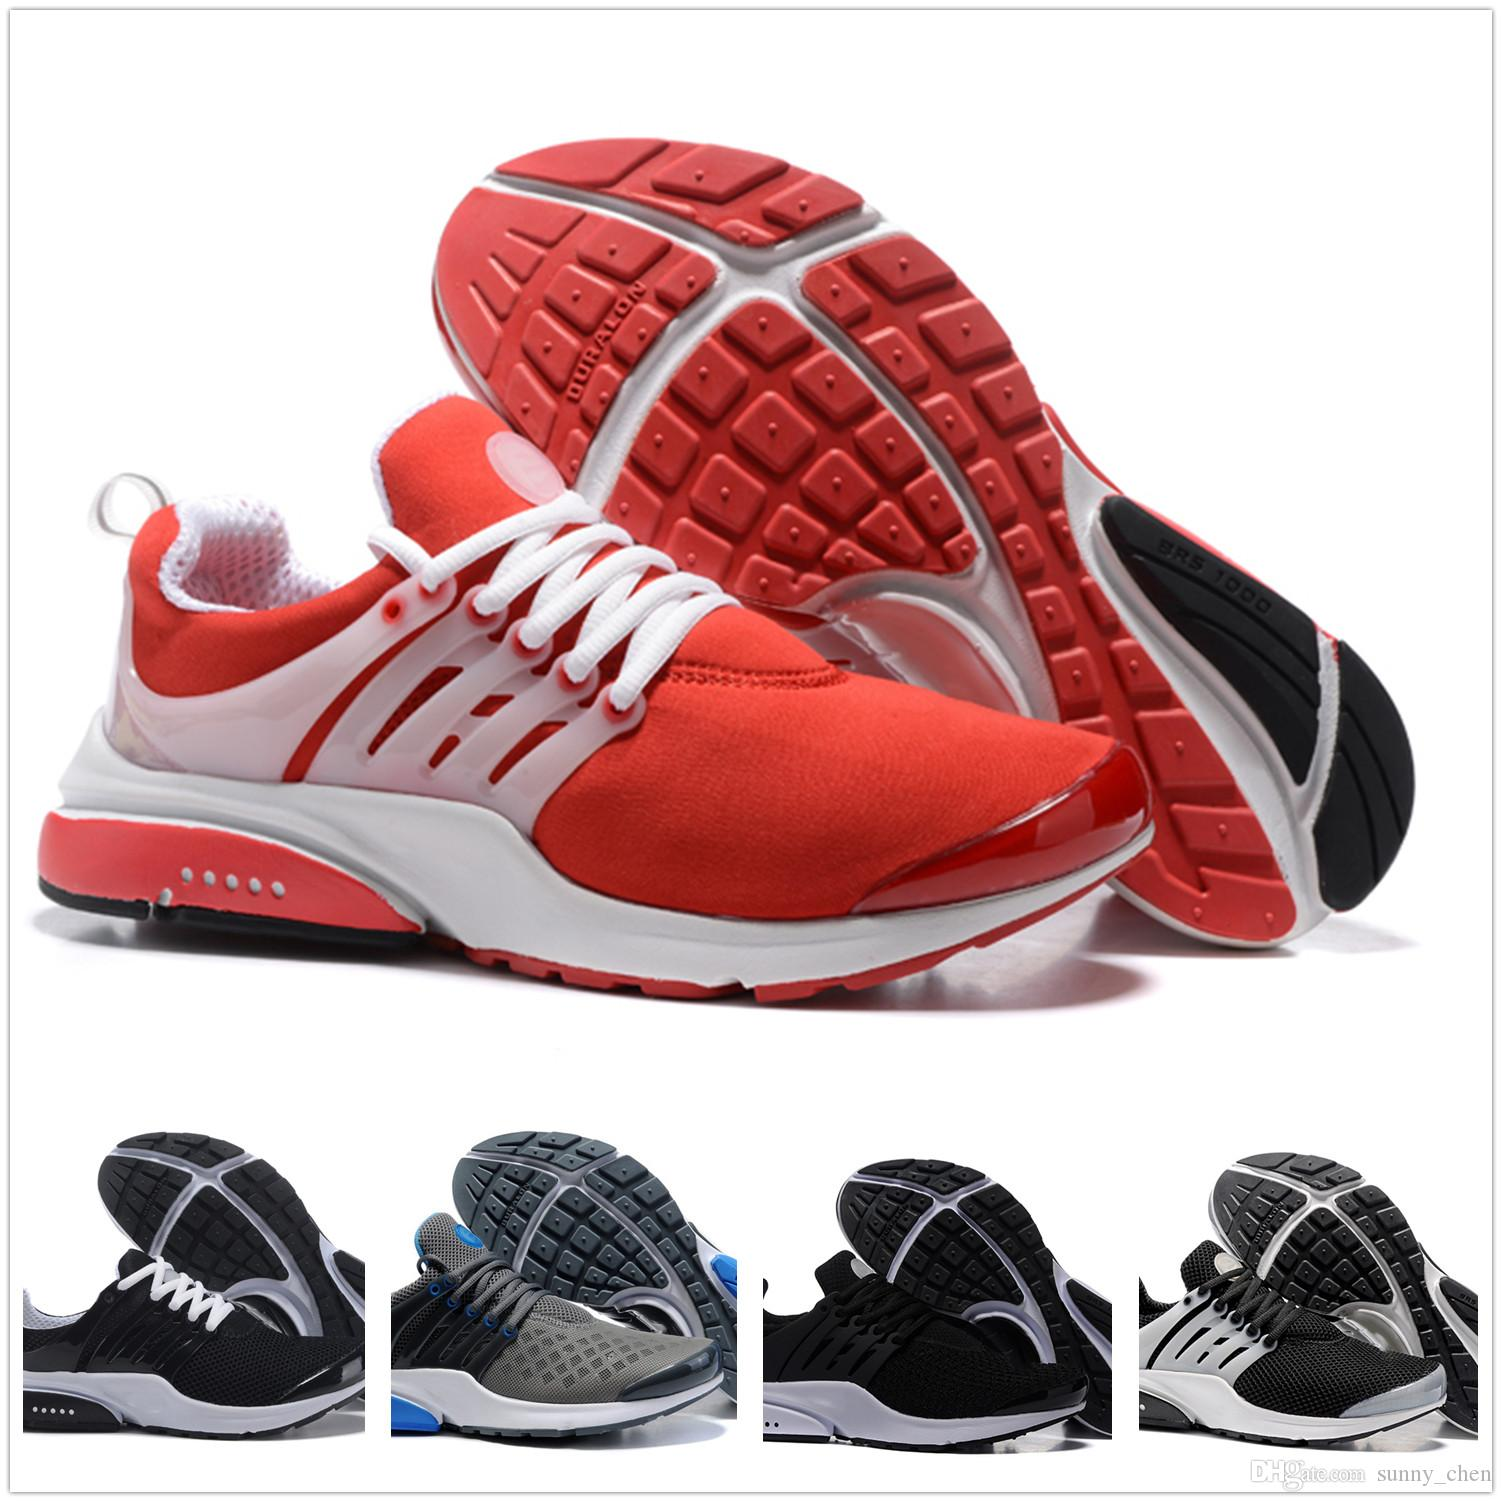 d3909e093b8a 2018 Presto 5 BR QS Breathe Black White Yellow Red Men Women Running Shoes  Prestos Sports Shoe Air Sole Walking Mens Designer Sneakers Sale Shoes Men  Shoes ...